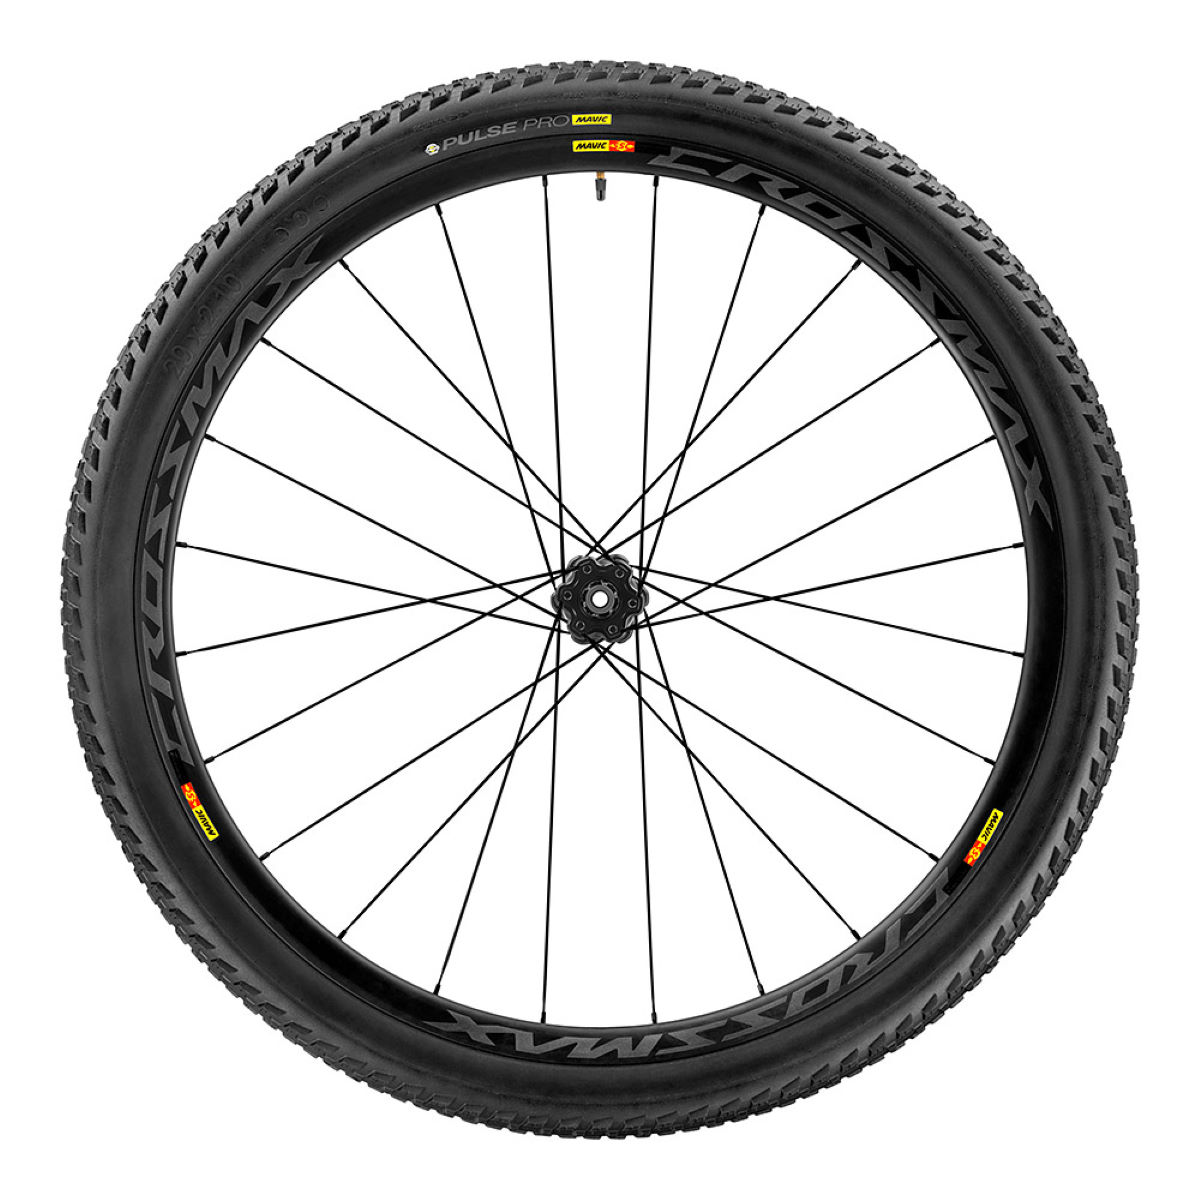 "Rear wheel Mavic Crossmax Pro Carbon 29 ""(with cover) - Competition wheels"